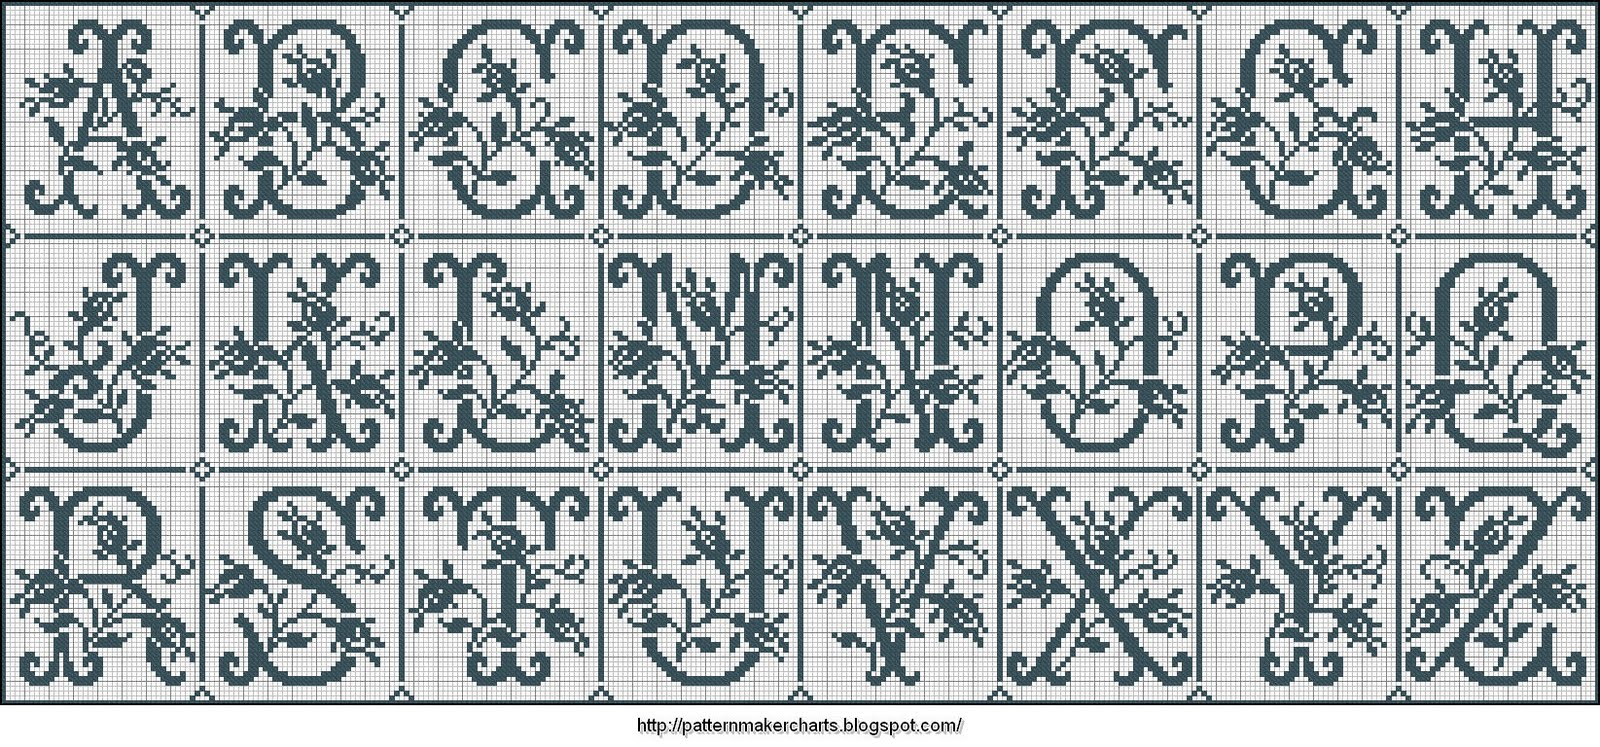 Artecy Cross Stitch. Cross Stitch Patterns of Antique Prints to